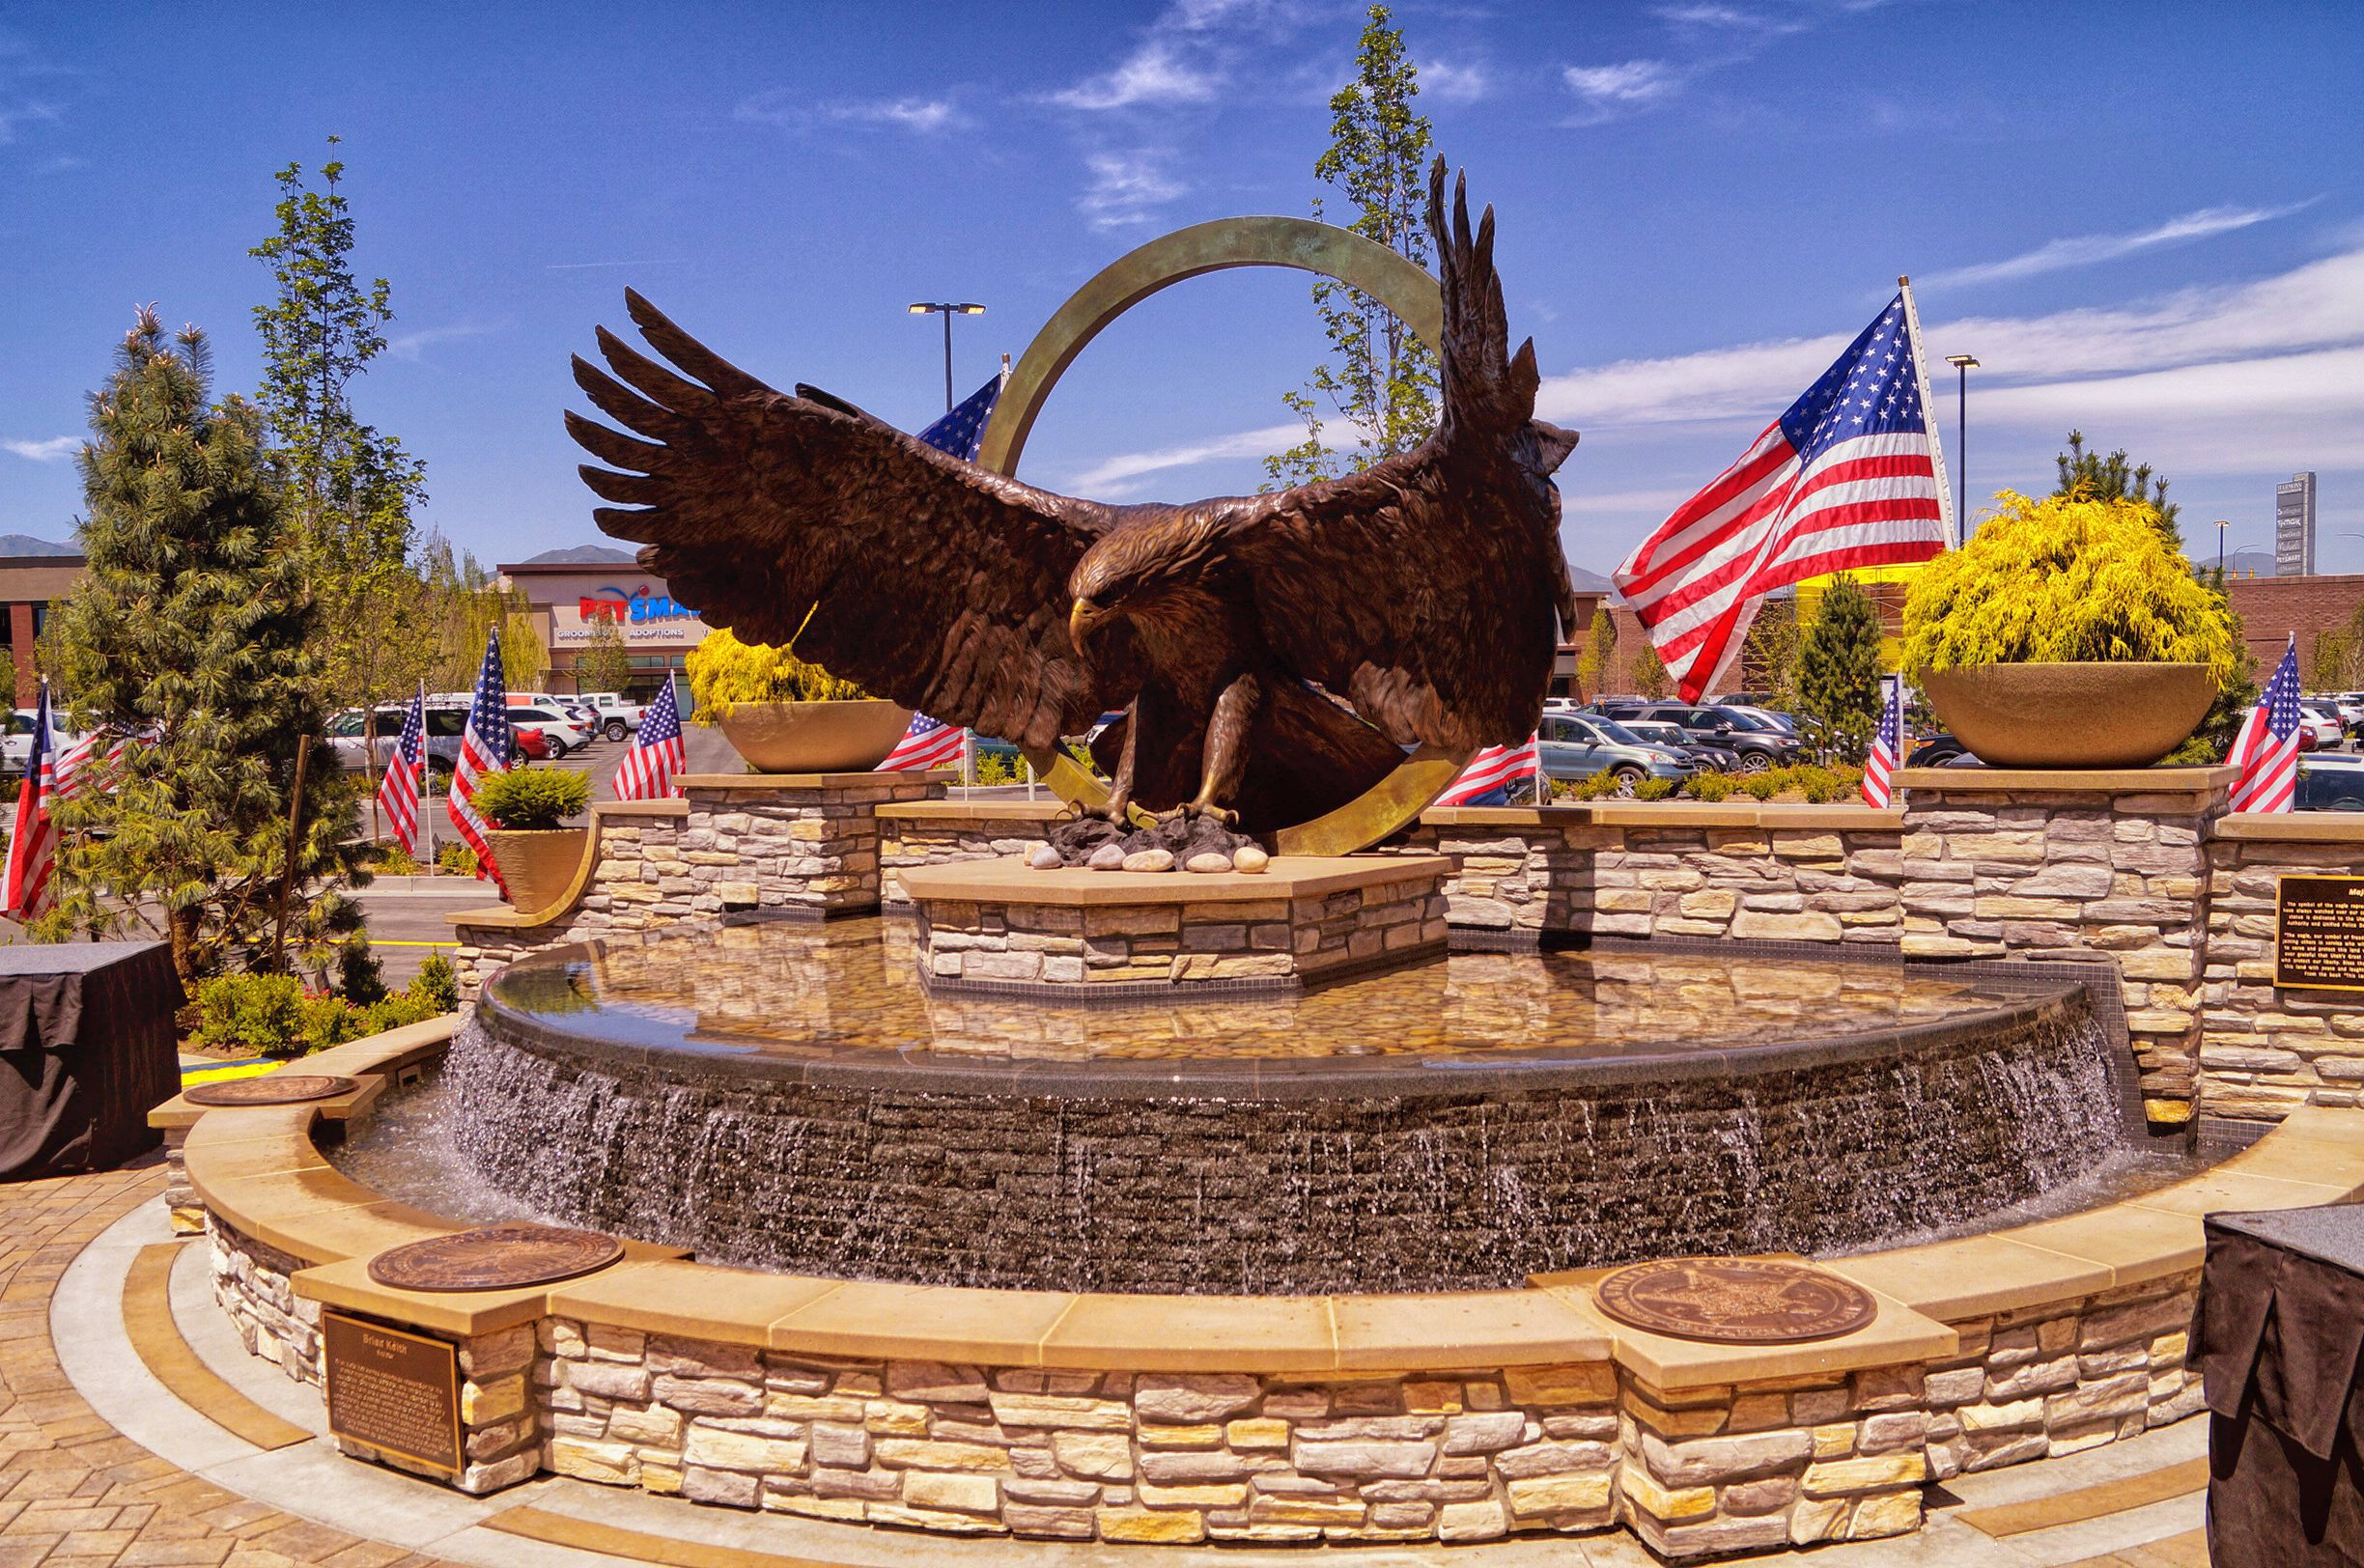 Majestic – 13-foot eagle for Mountain View Village